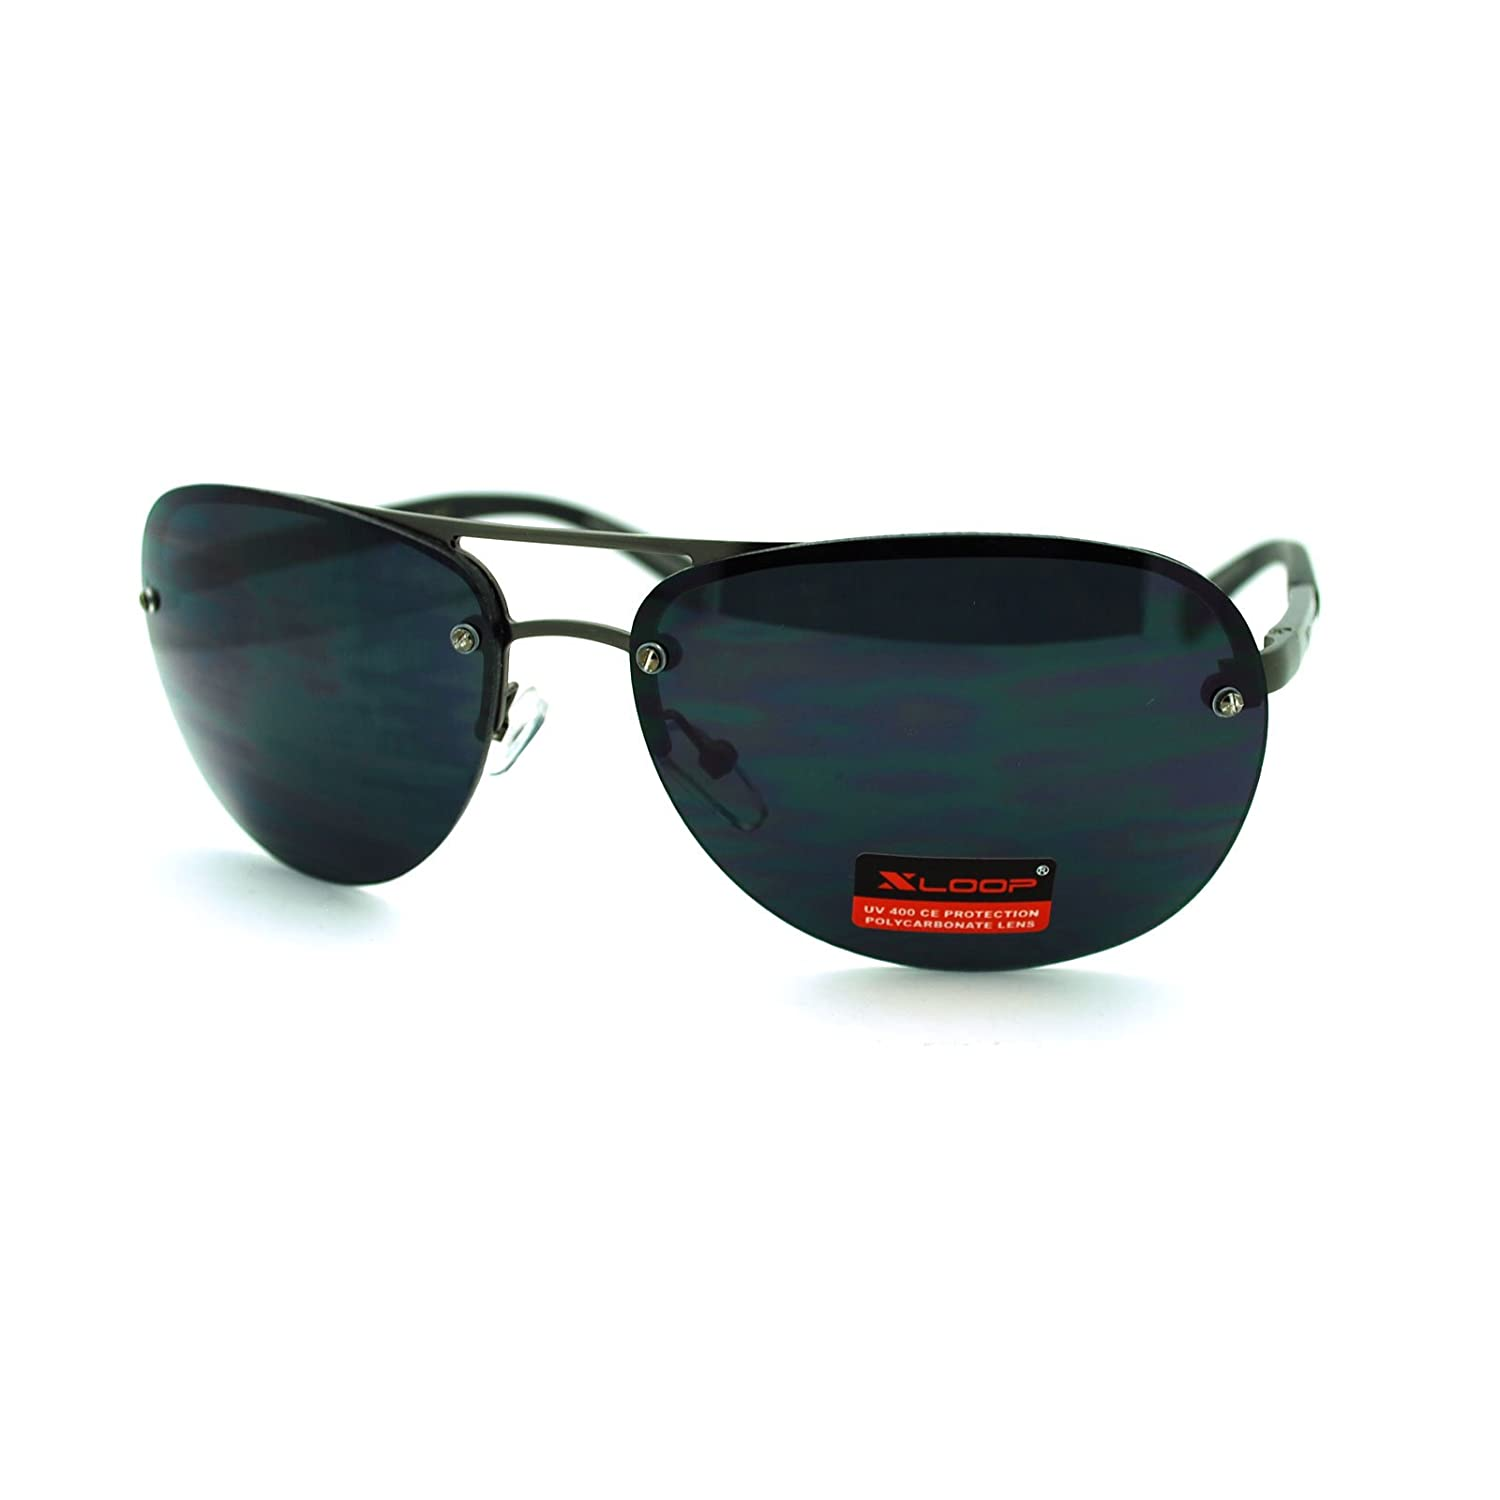 5bb23552cd8 Amazon.com  X-Loop Fashion Sunglasses Rimless Round Aviator Spring Hinge  Black  Clothing